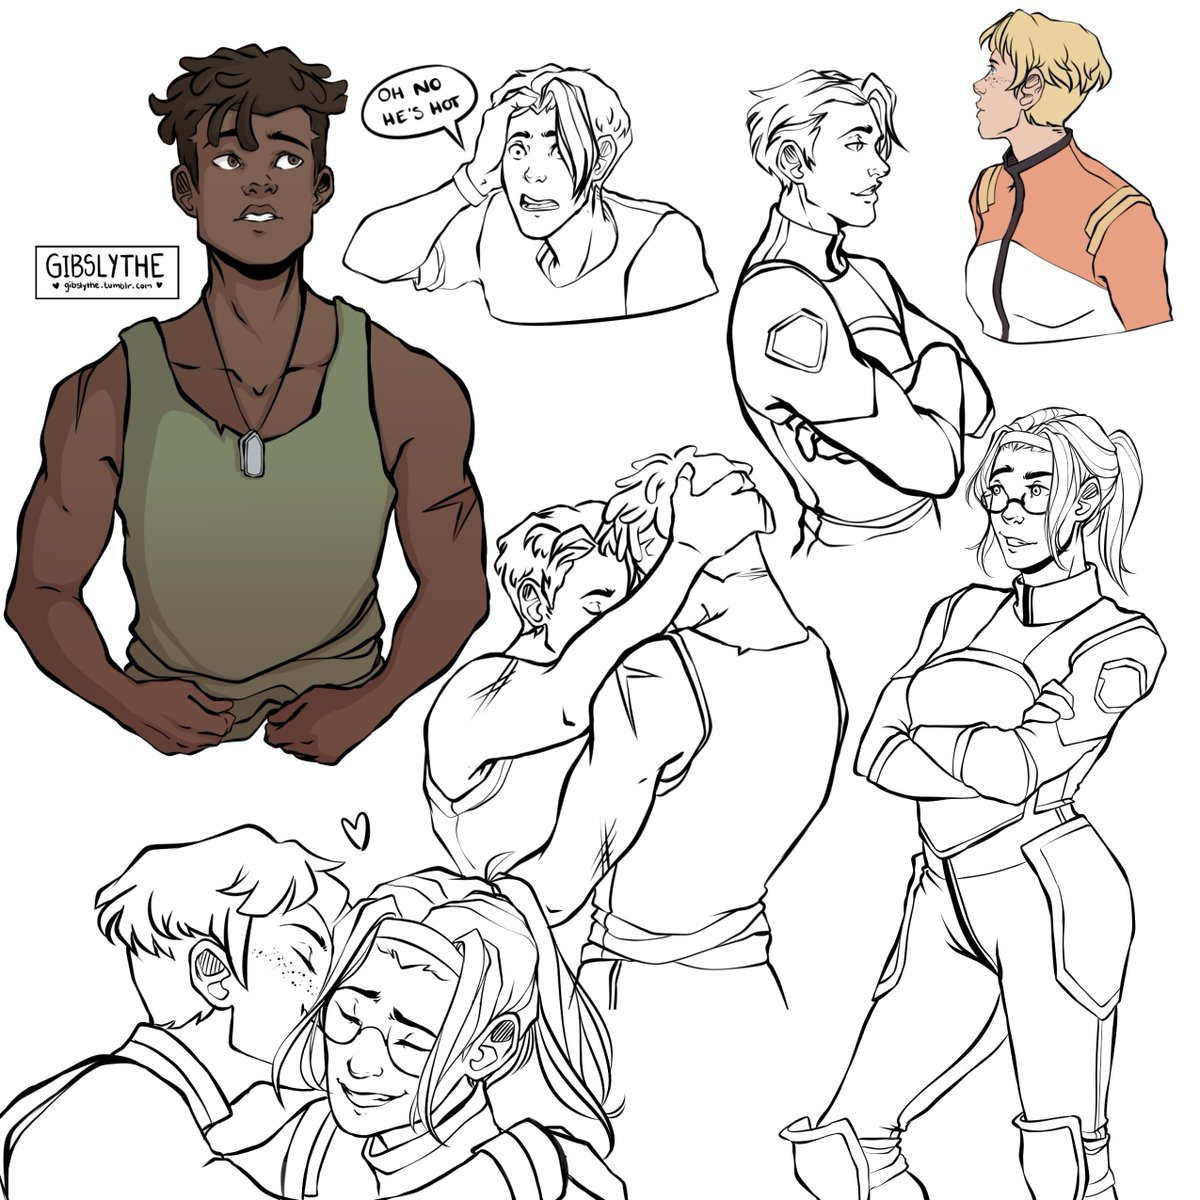 Everyone on the Earth Squad is hot? A Sketch Page by me #art #vld #voltron<br>http://pic.twitter.com/zI5DcTWSLF